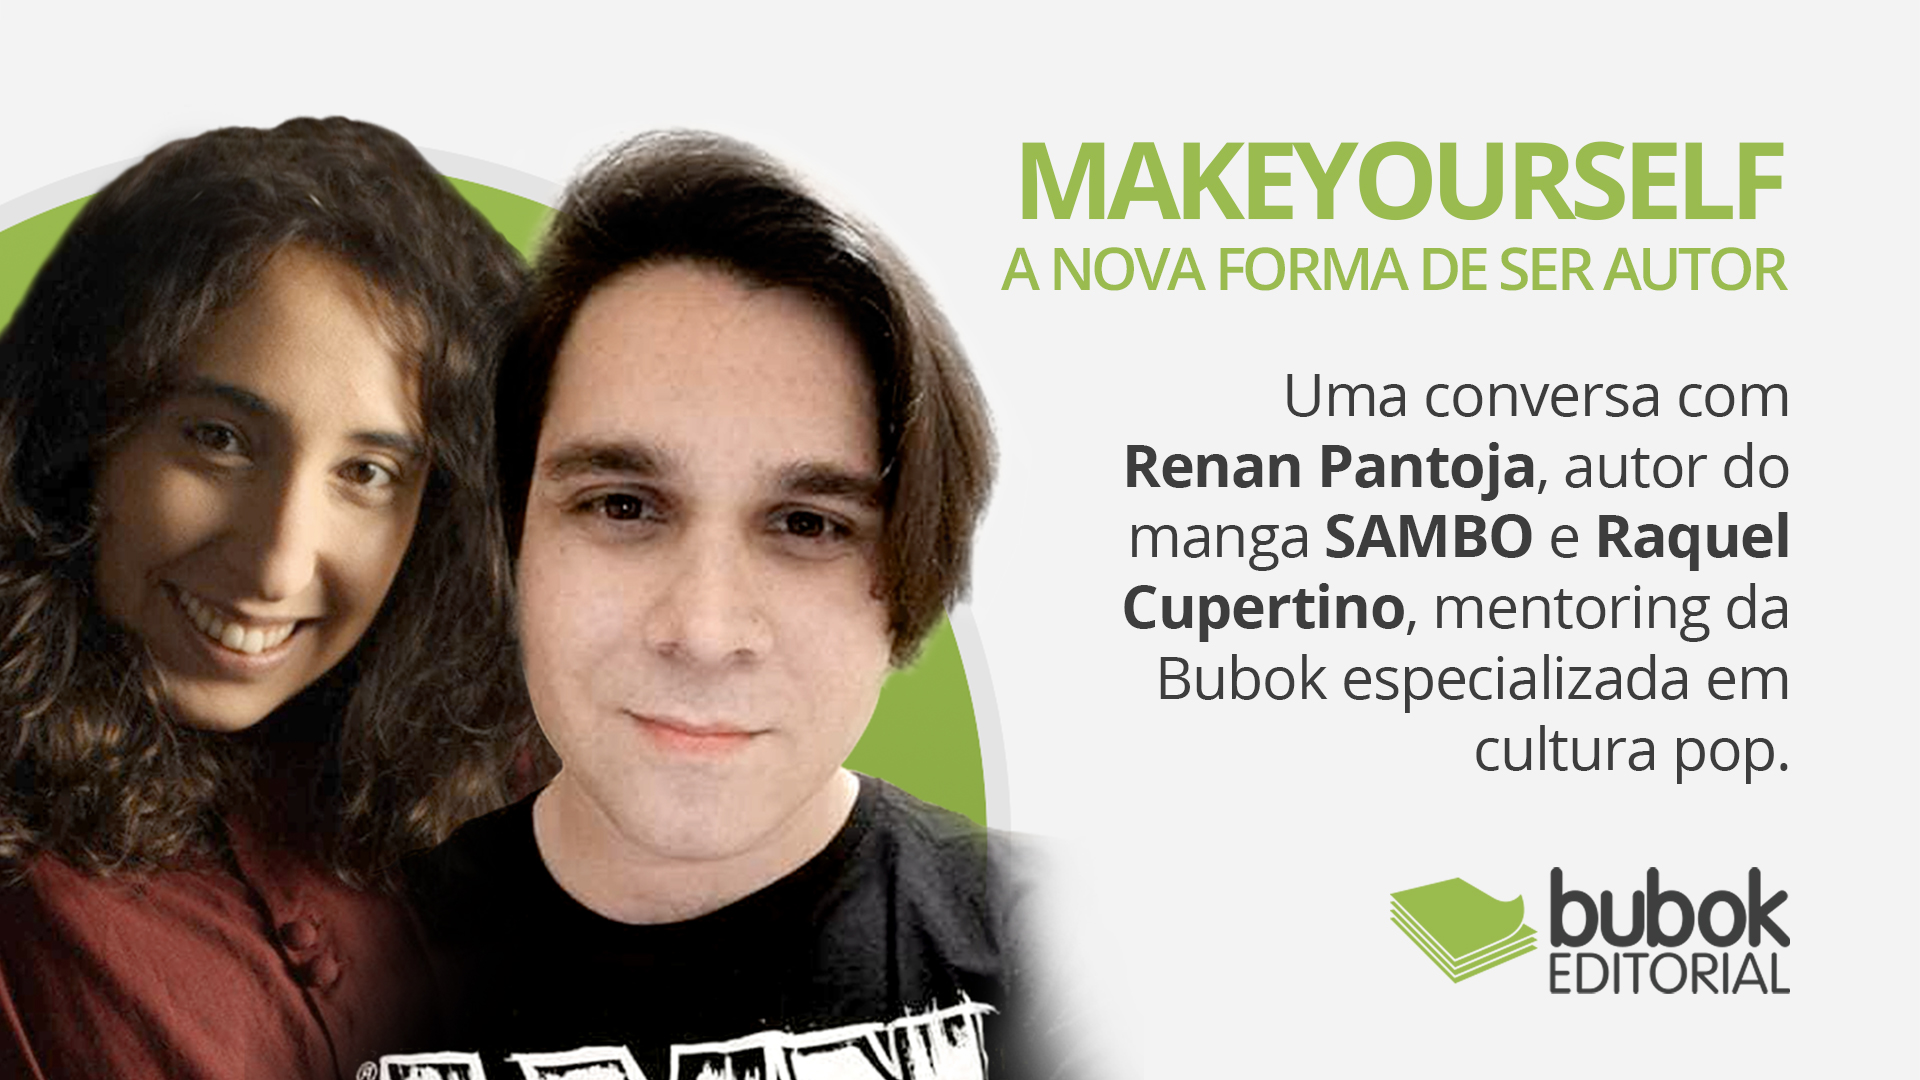 MAKEYOURSELF a nova forma de ser autor